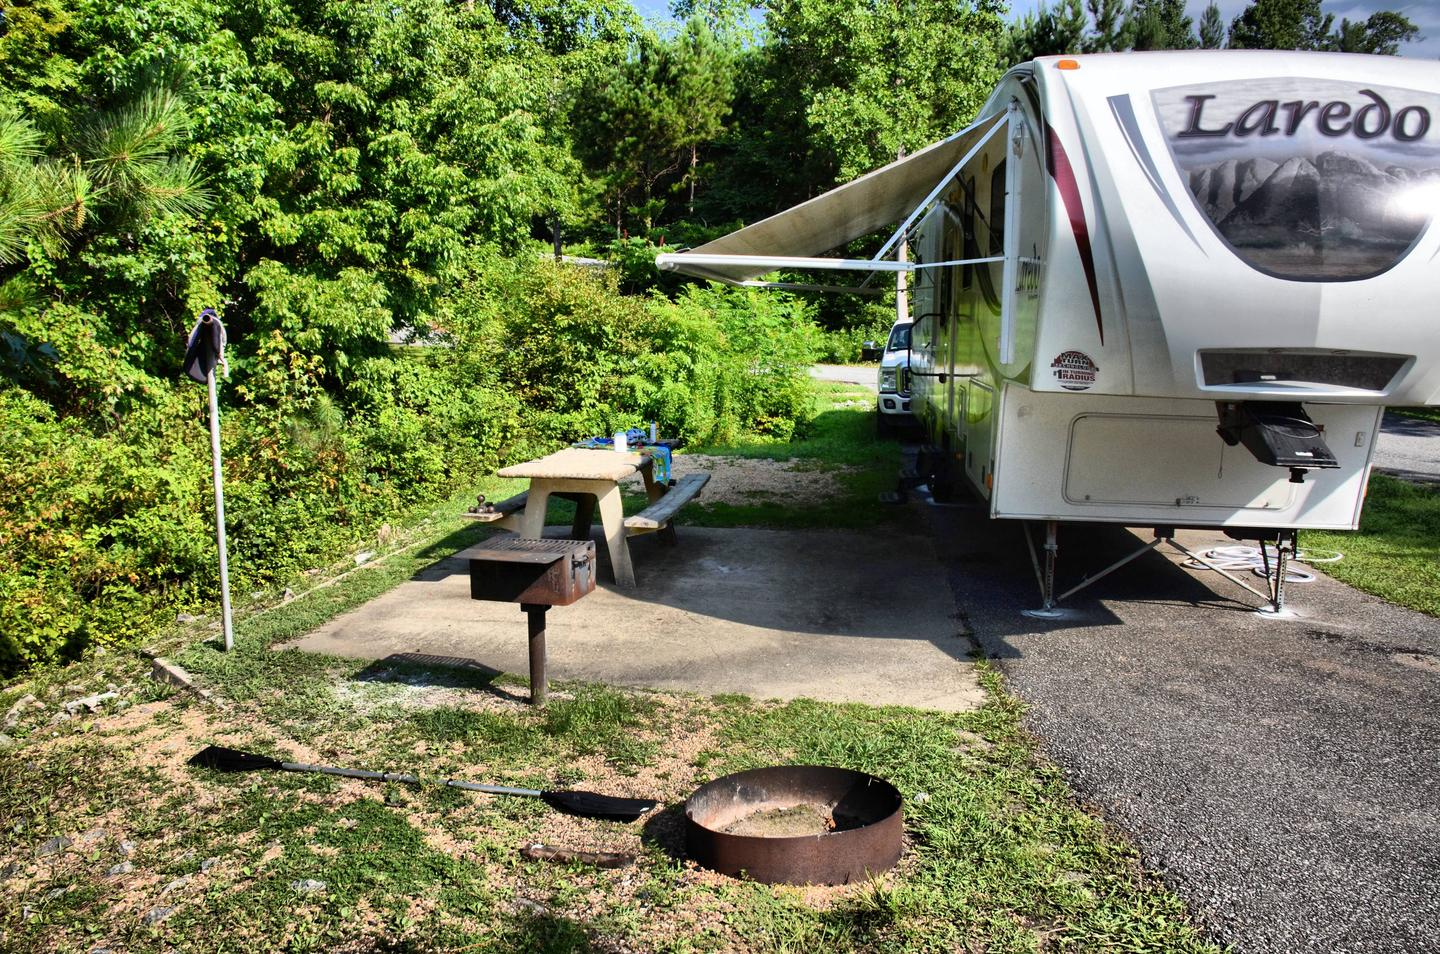 Awning-side clearance, campsite view..Payne Campground, campsite 36.